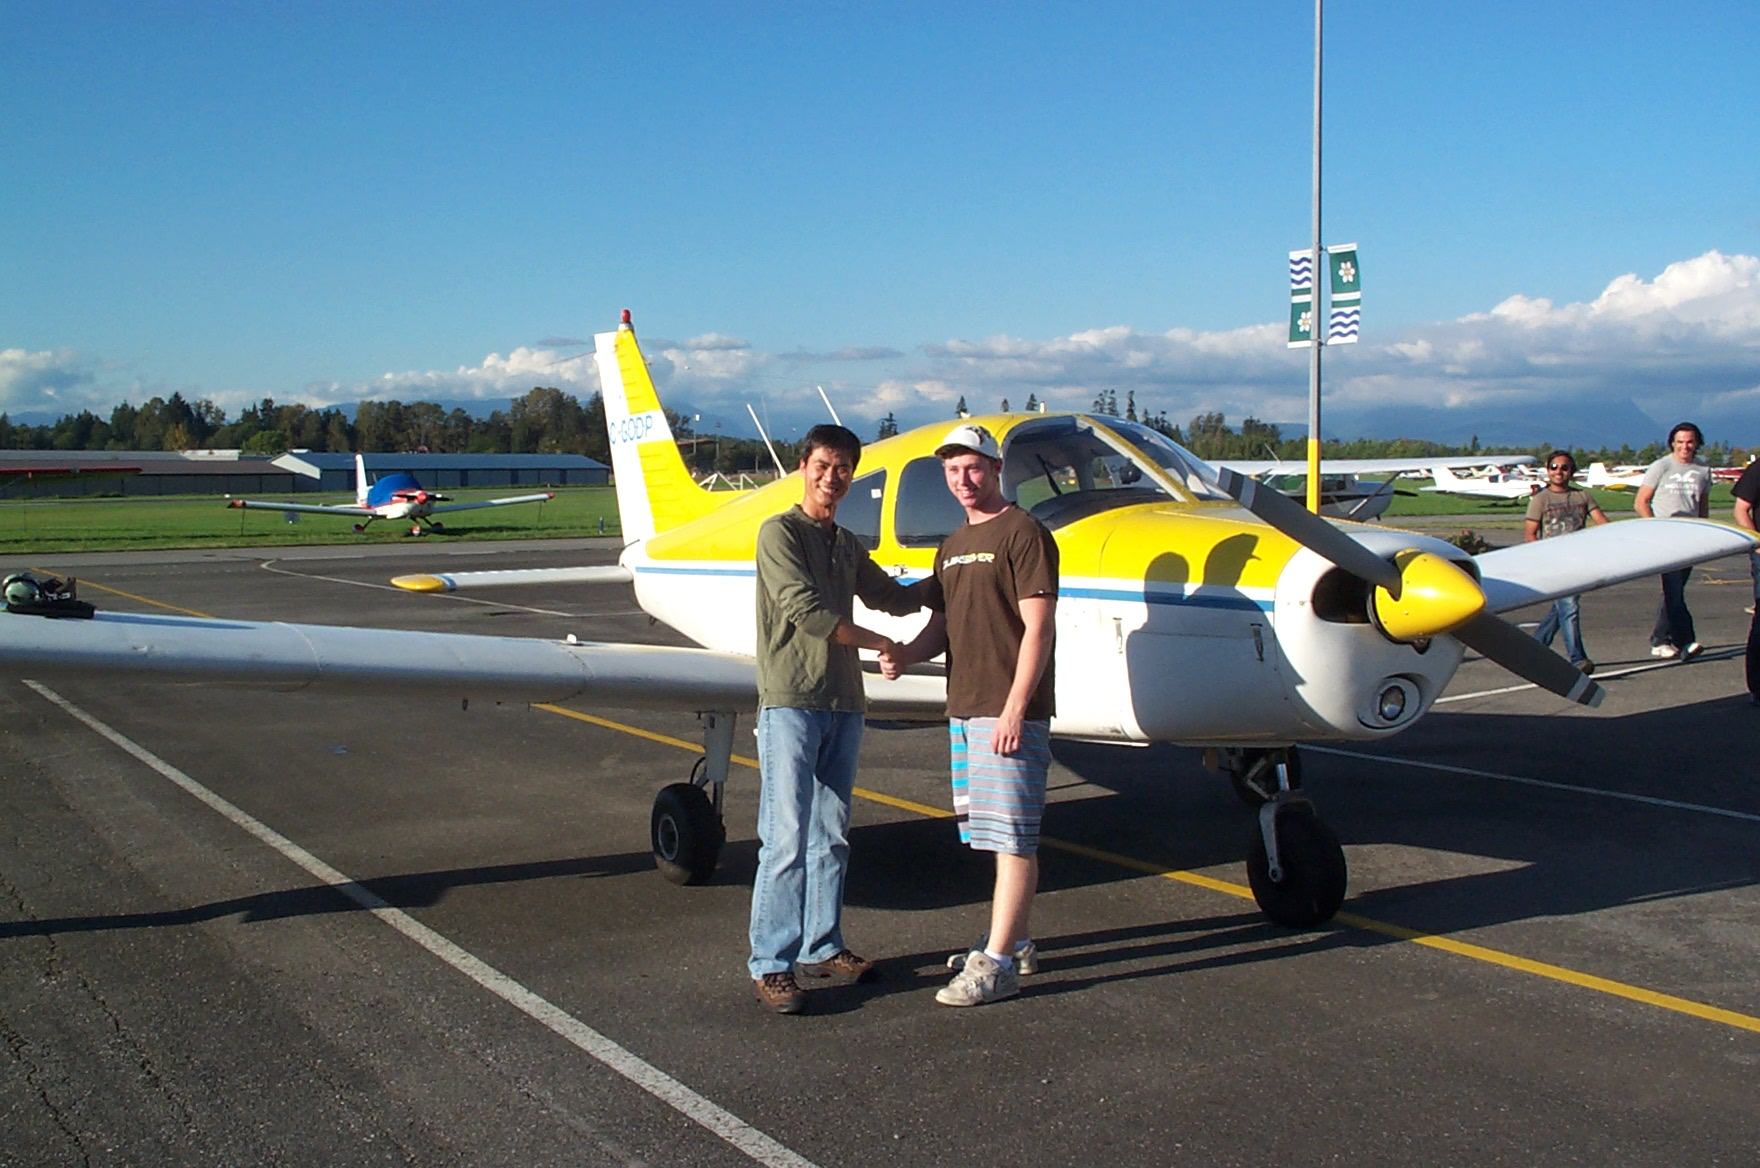 Sheldon Hemmingway is congratulated by Flight Instructor Hoowan Nam after the completion of Sheldon's First Solo Flight in Cherokee GODP on September 28, 2010. Langley Flying School.